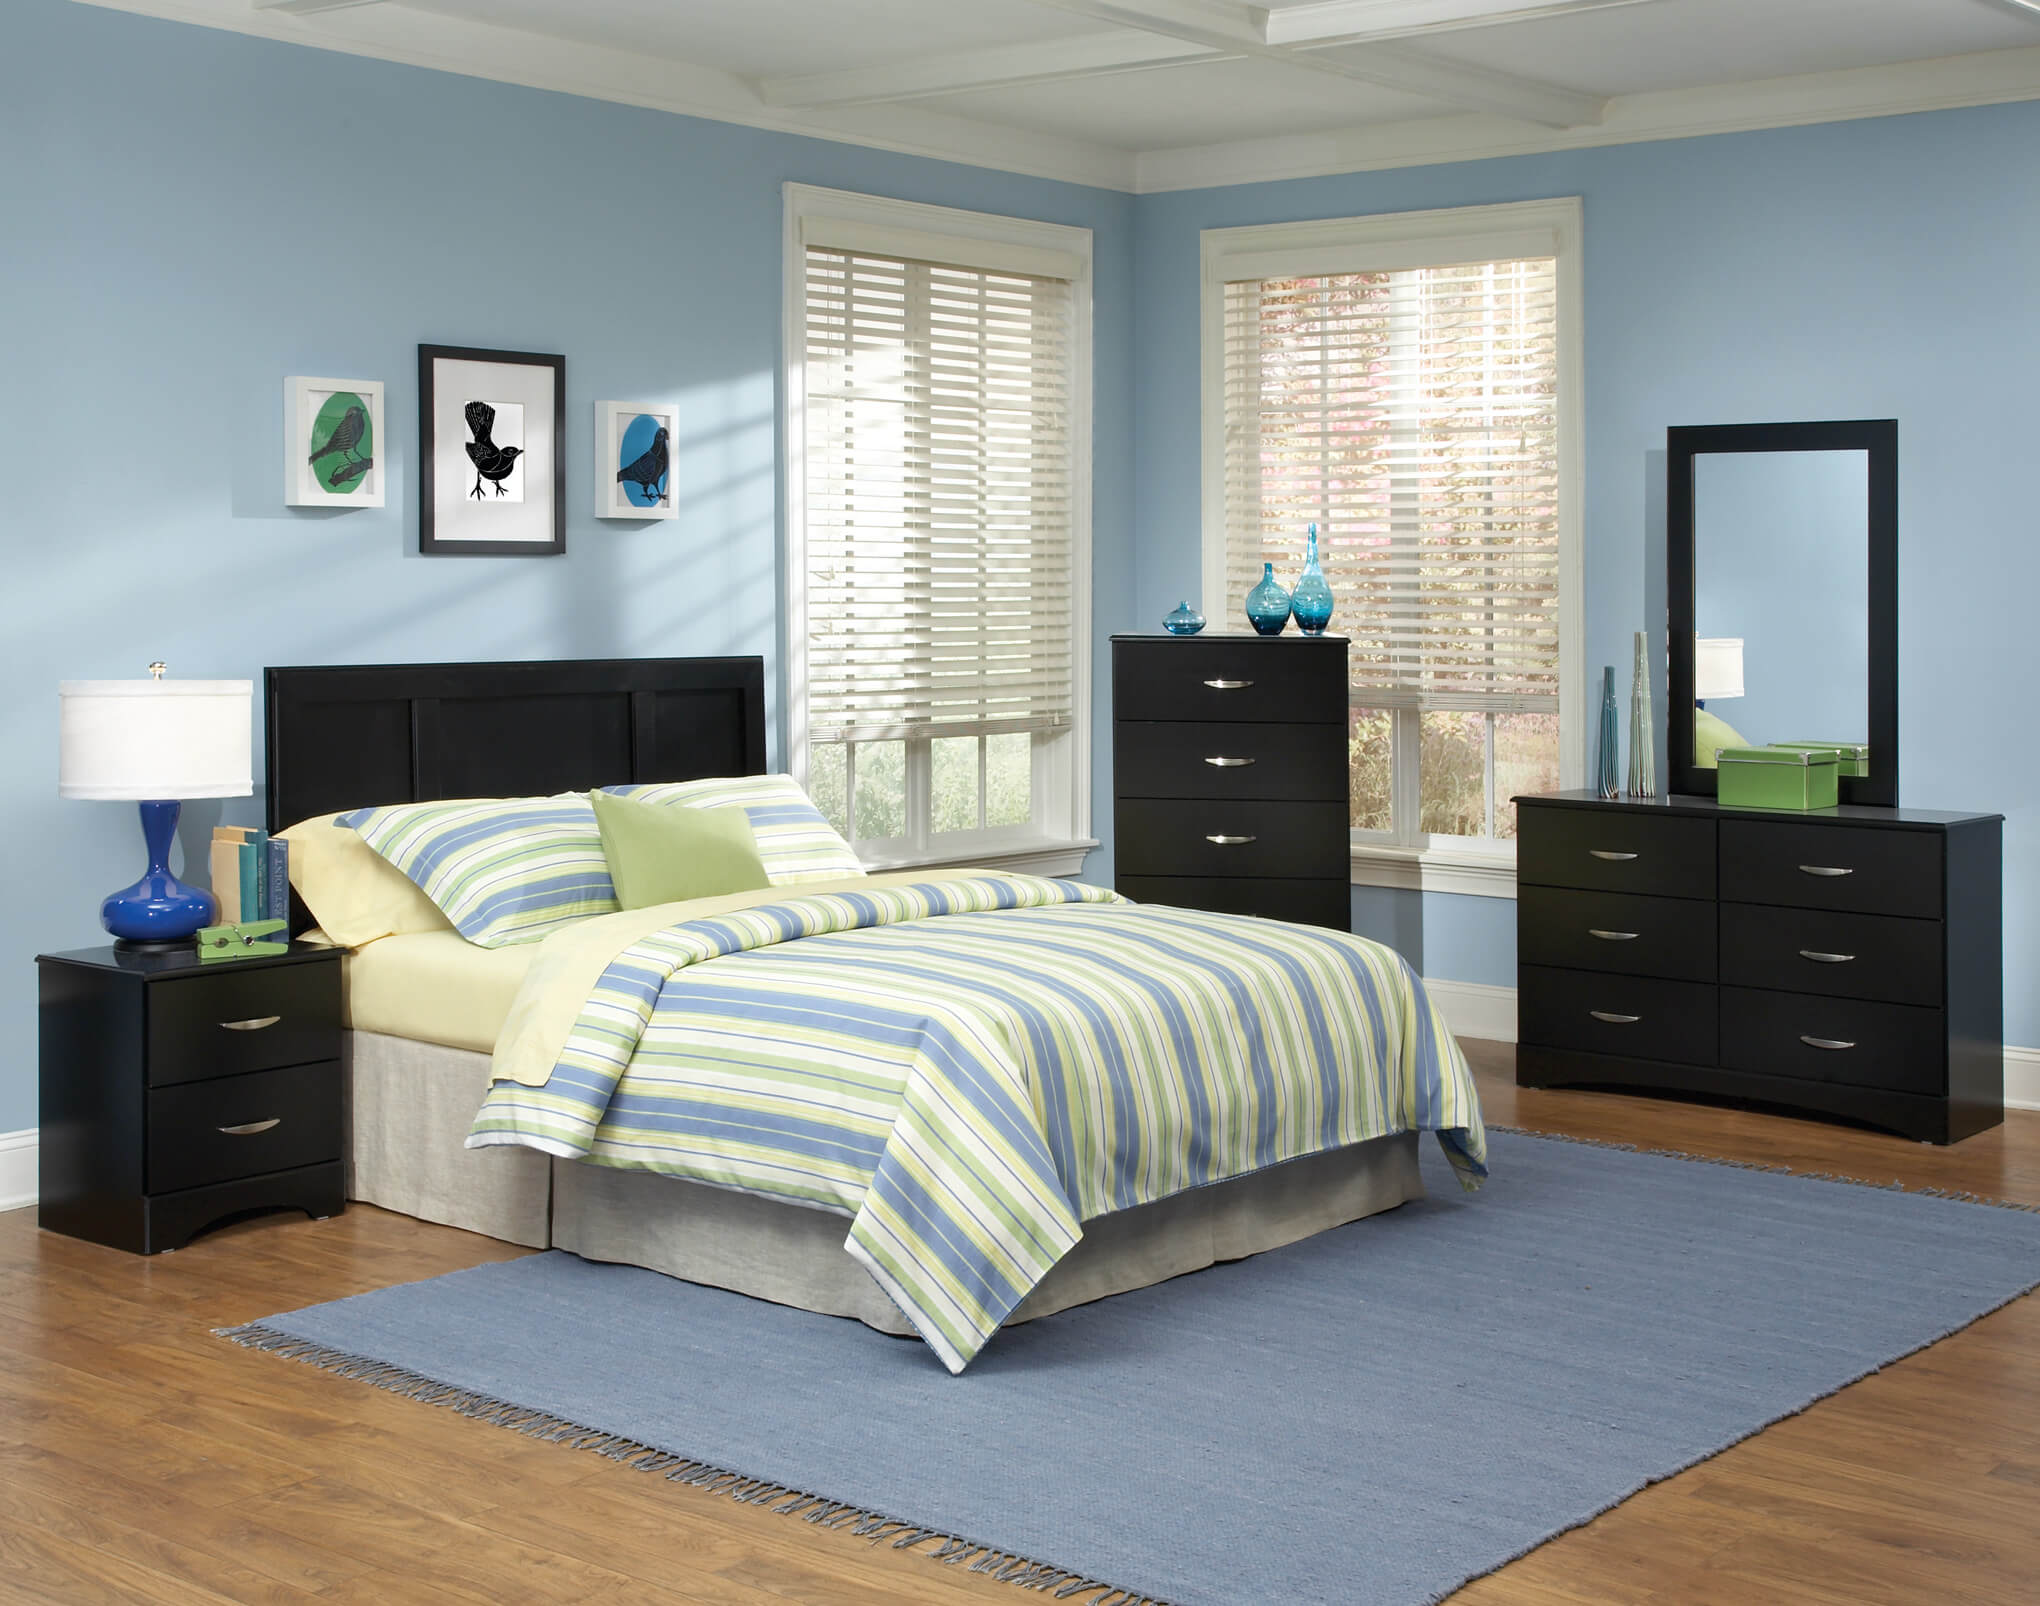 Bedroom Furniture Sets | Urban Furniture Outlet Delaware